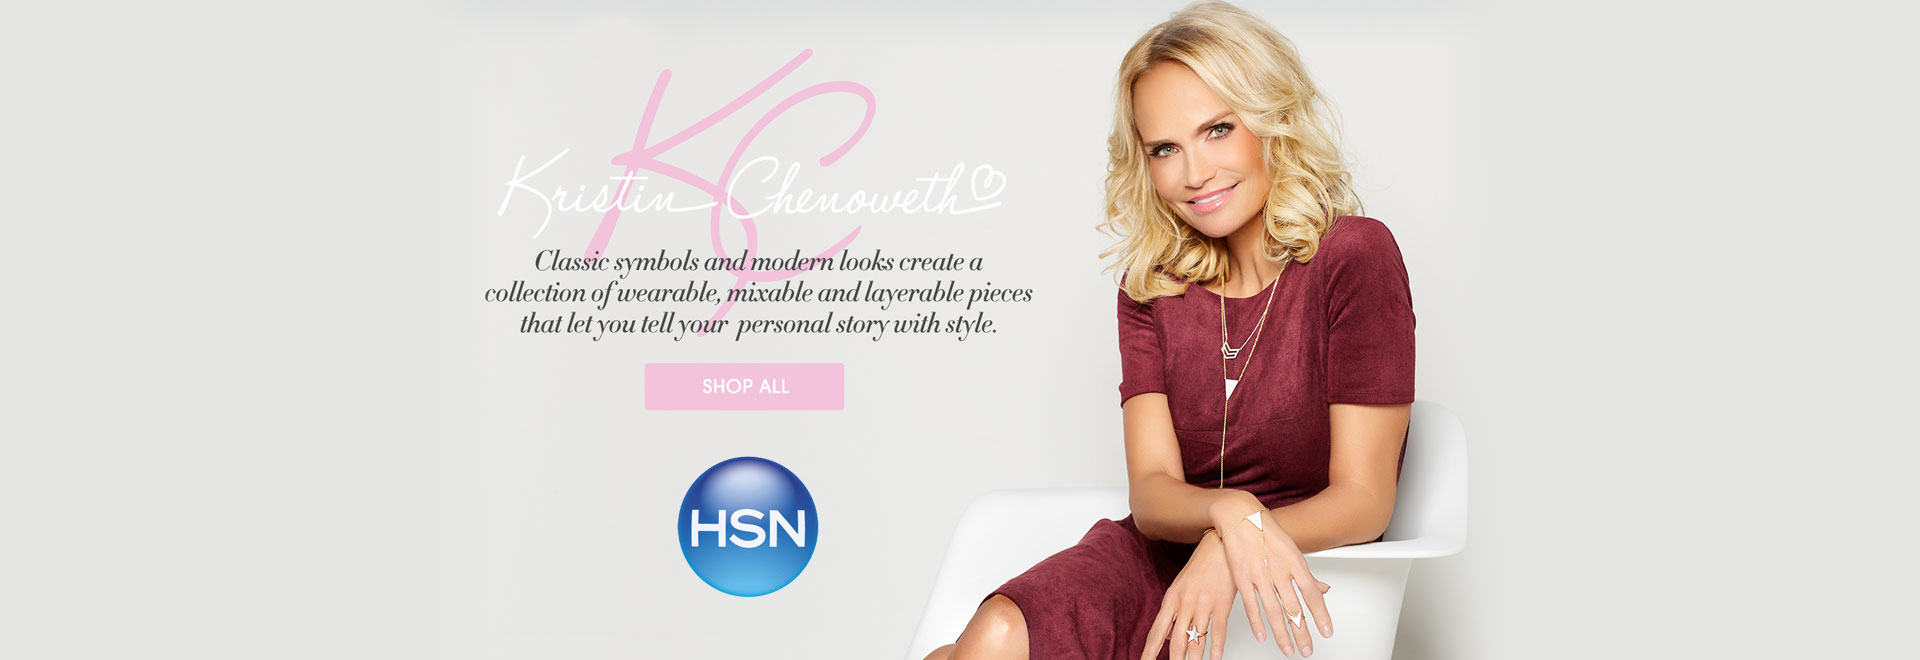 Kristin Chenoweth on HSN